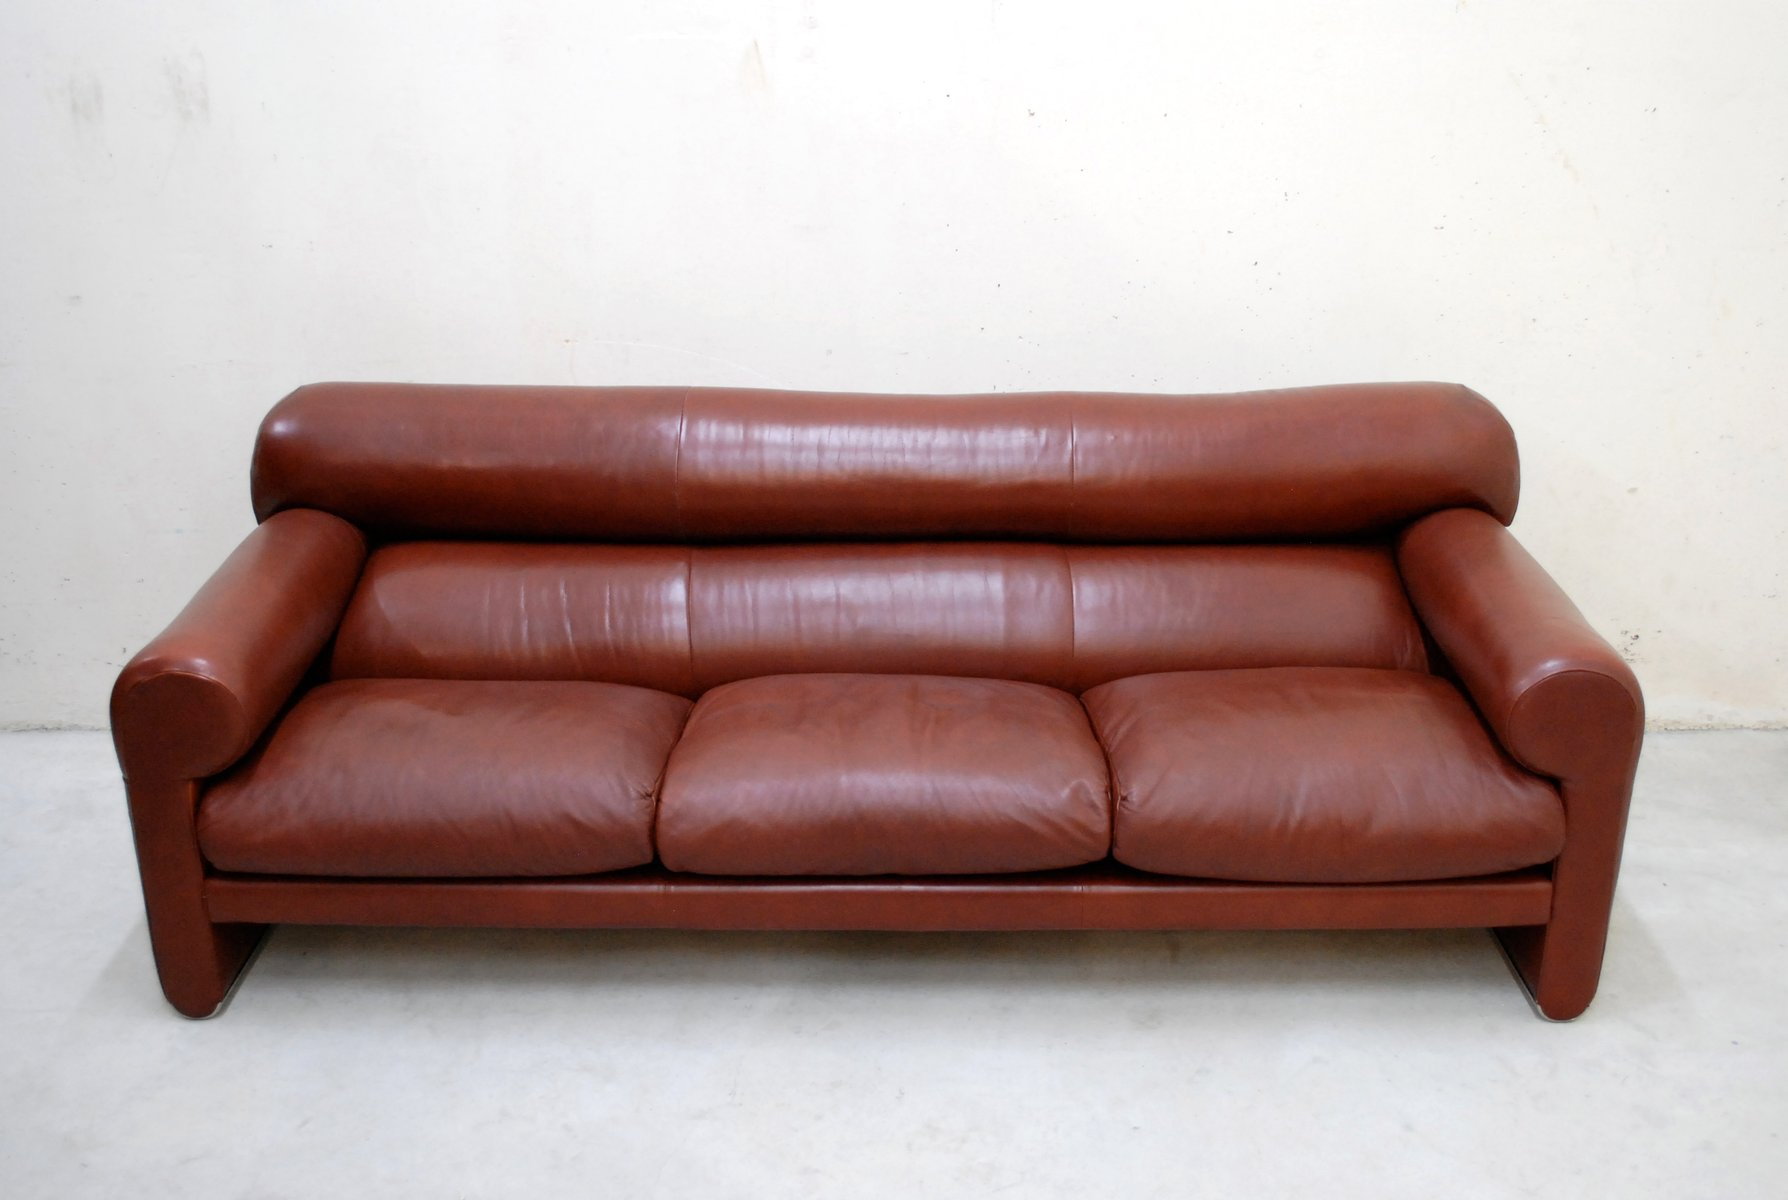 Italian leather sofa by sergio mazza and giuliana gramigna for poltrona frau for sale at pamono Italian leather sofa uk